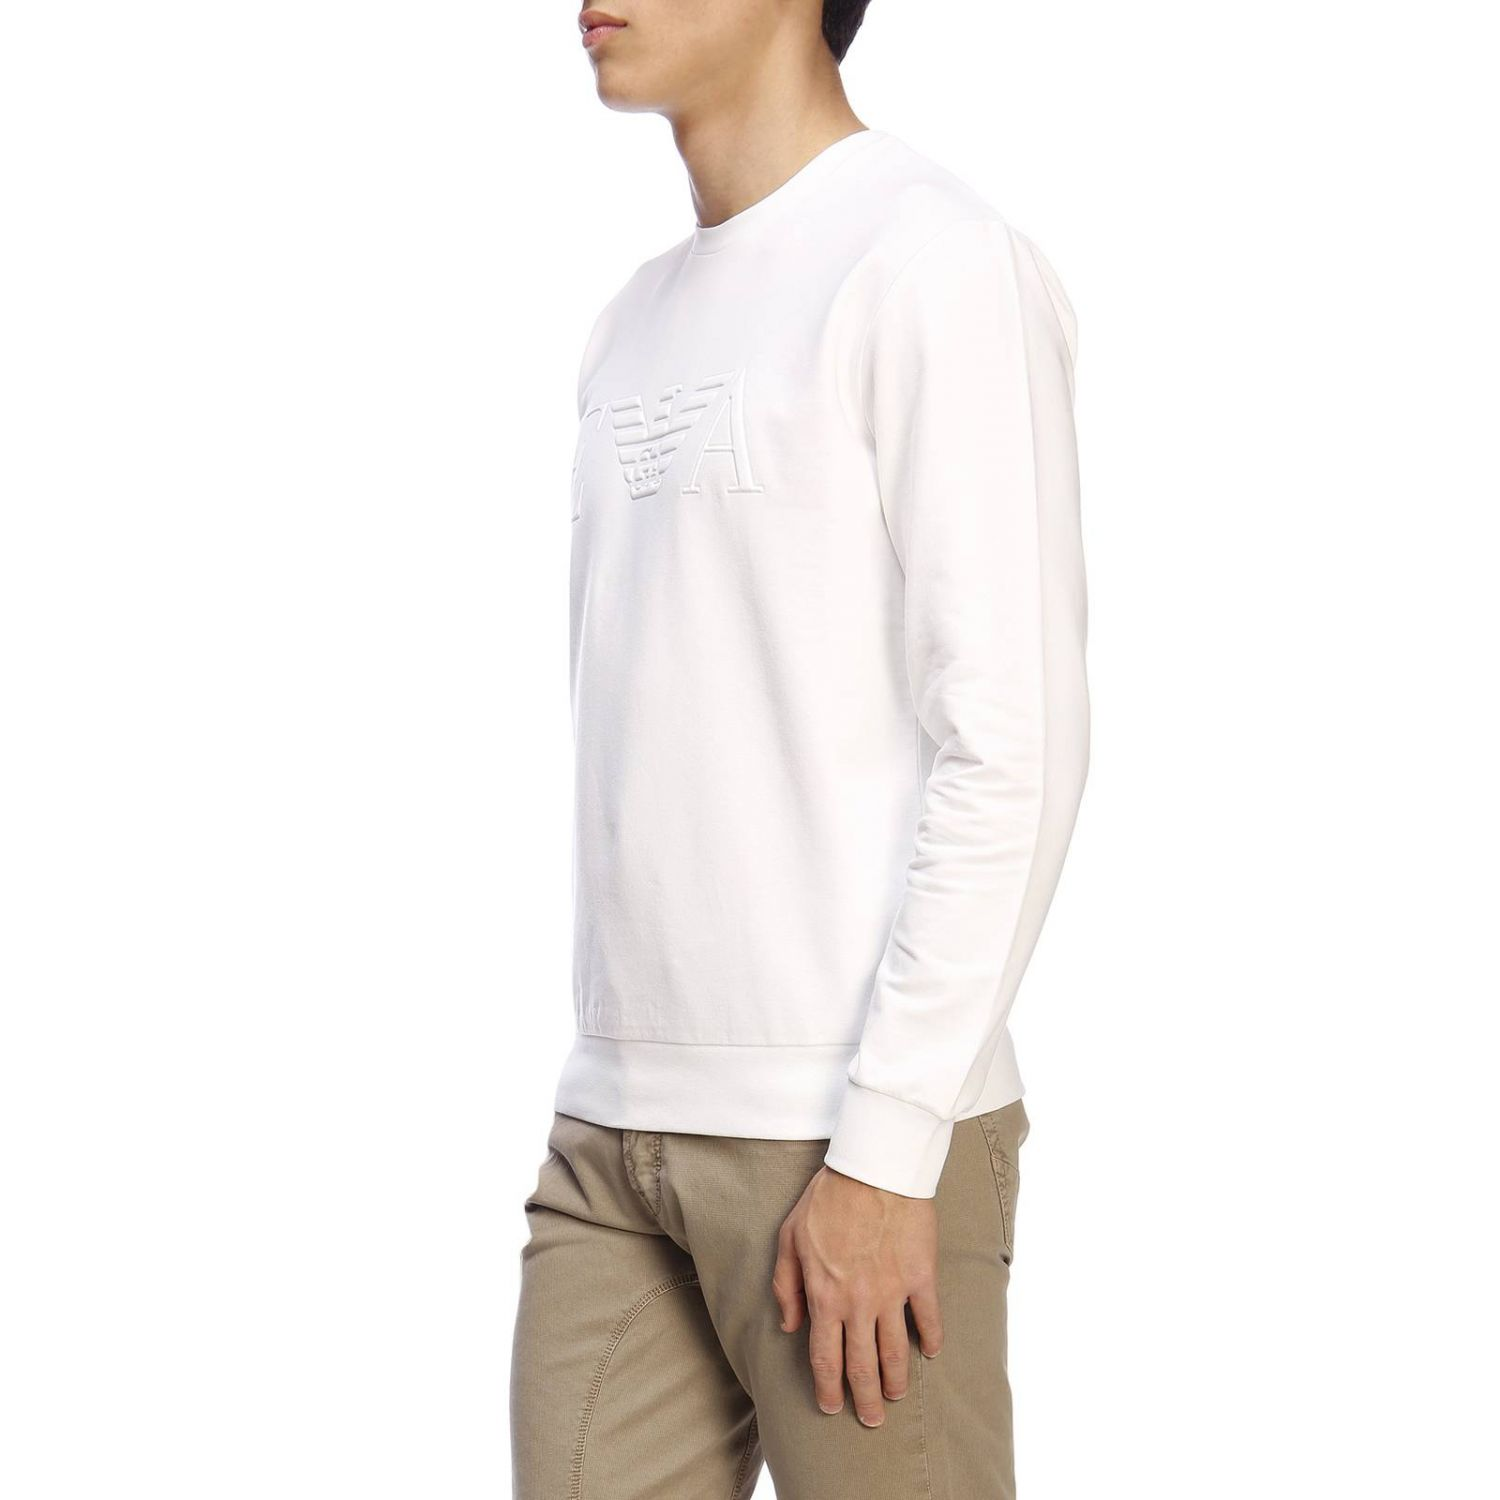 Sweater men Emporio Armani white 2